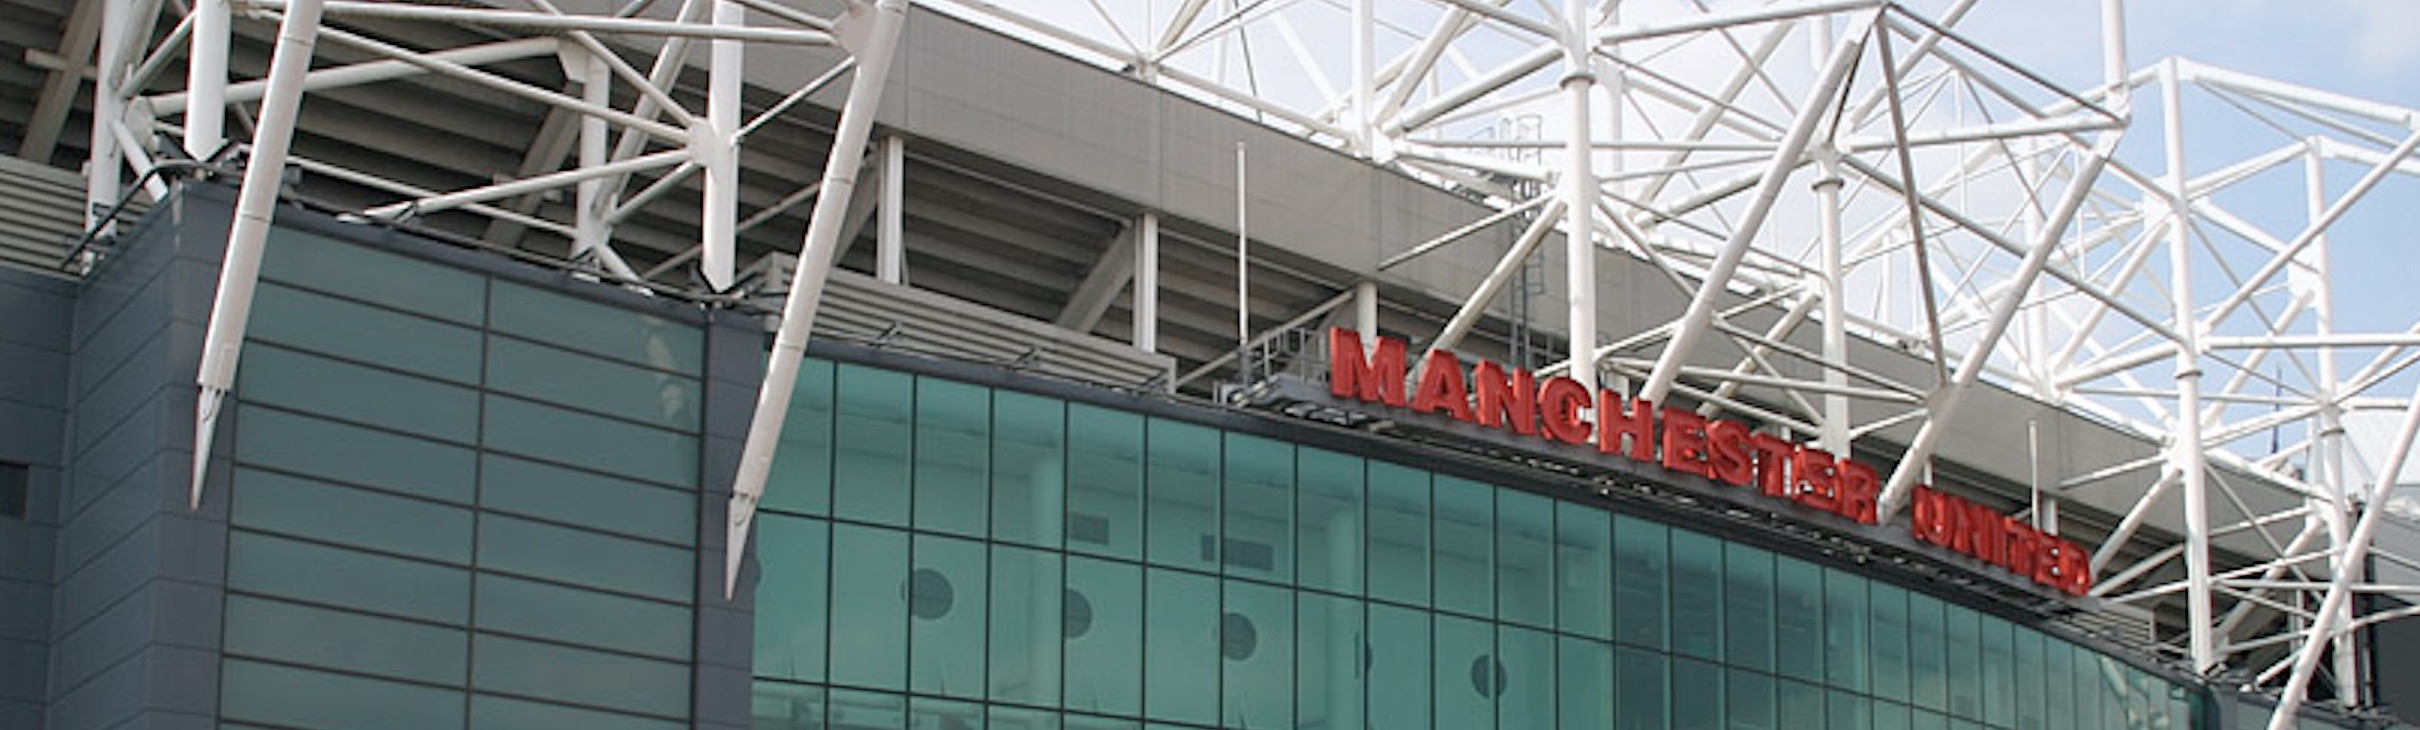 Man United V Swansea - Daytrip by Coach & Ferry